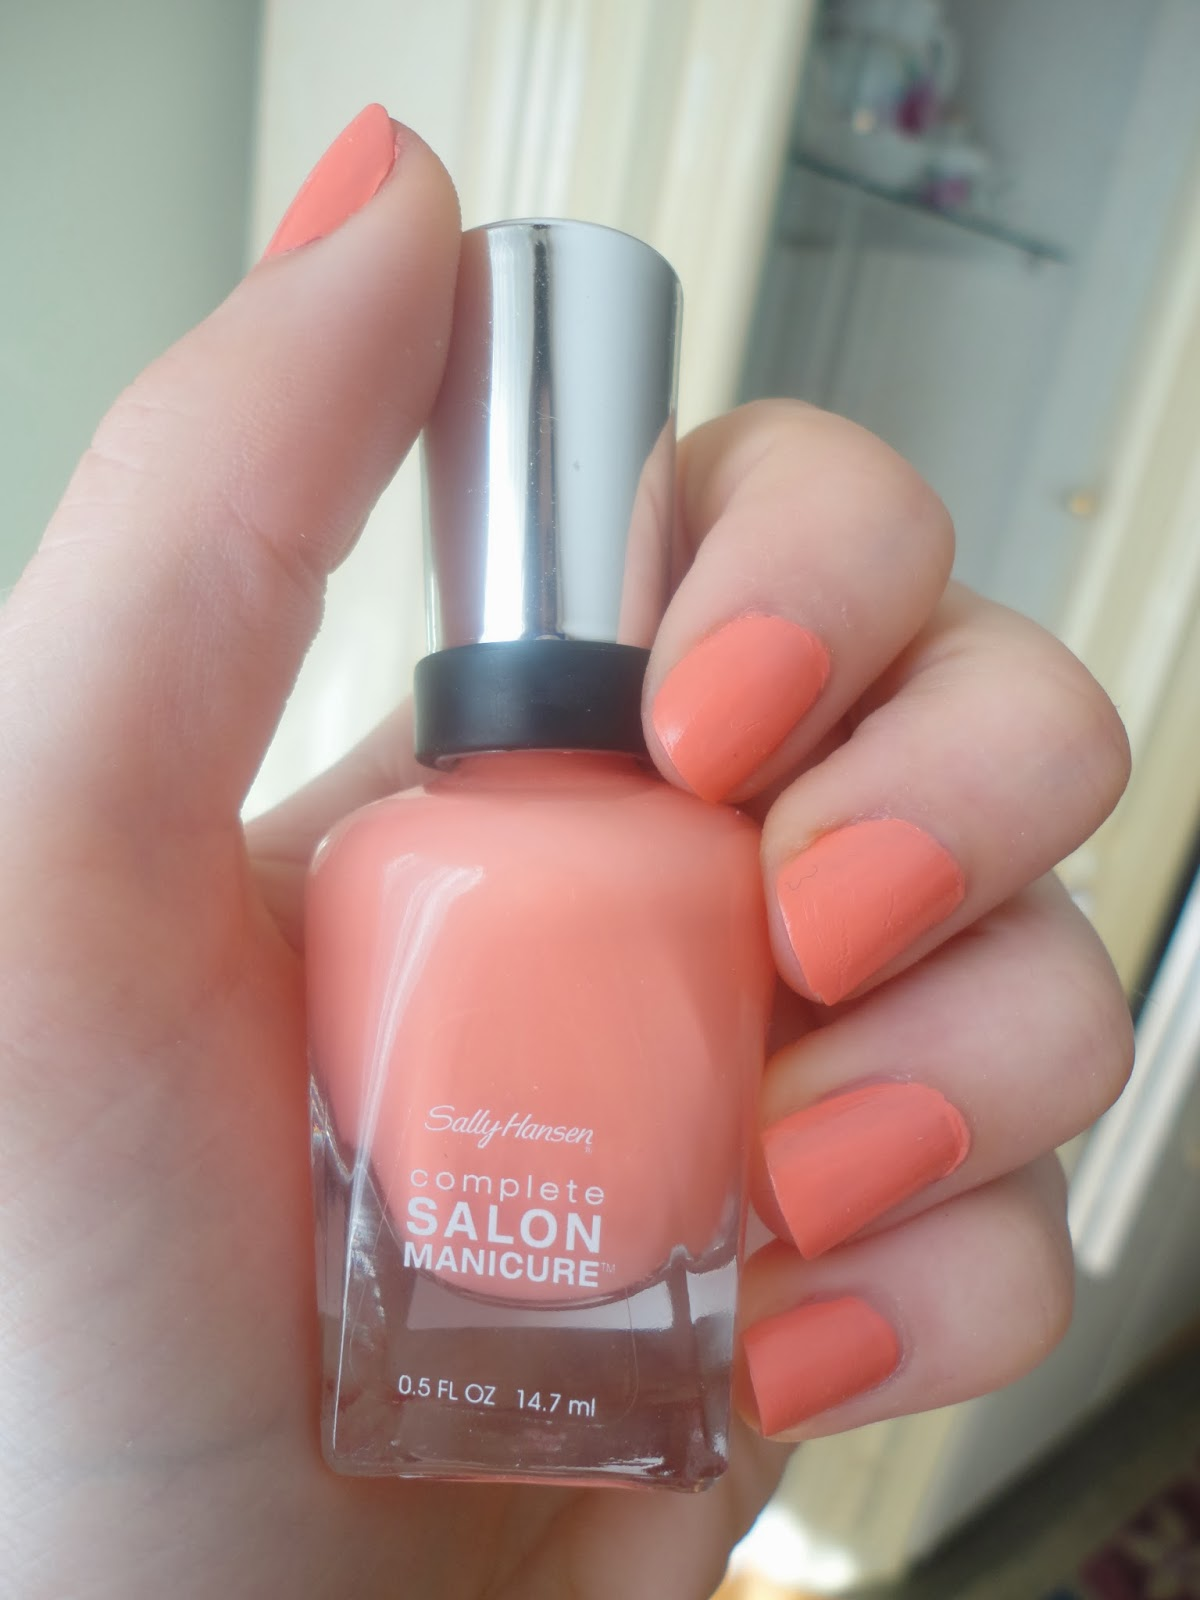 Sally Hansen Complete Salon Manicure Nail Polish In Quot Peach Of Cake Quot Natalie Loves Beauty